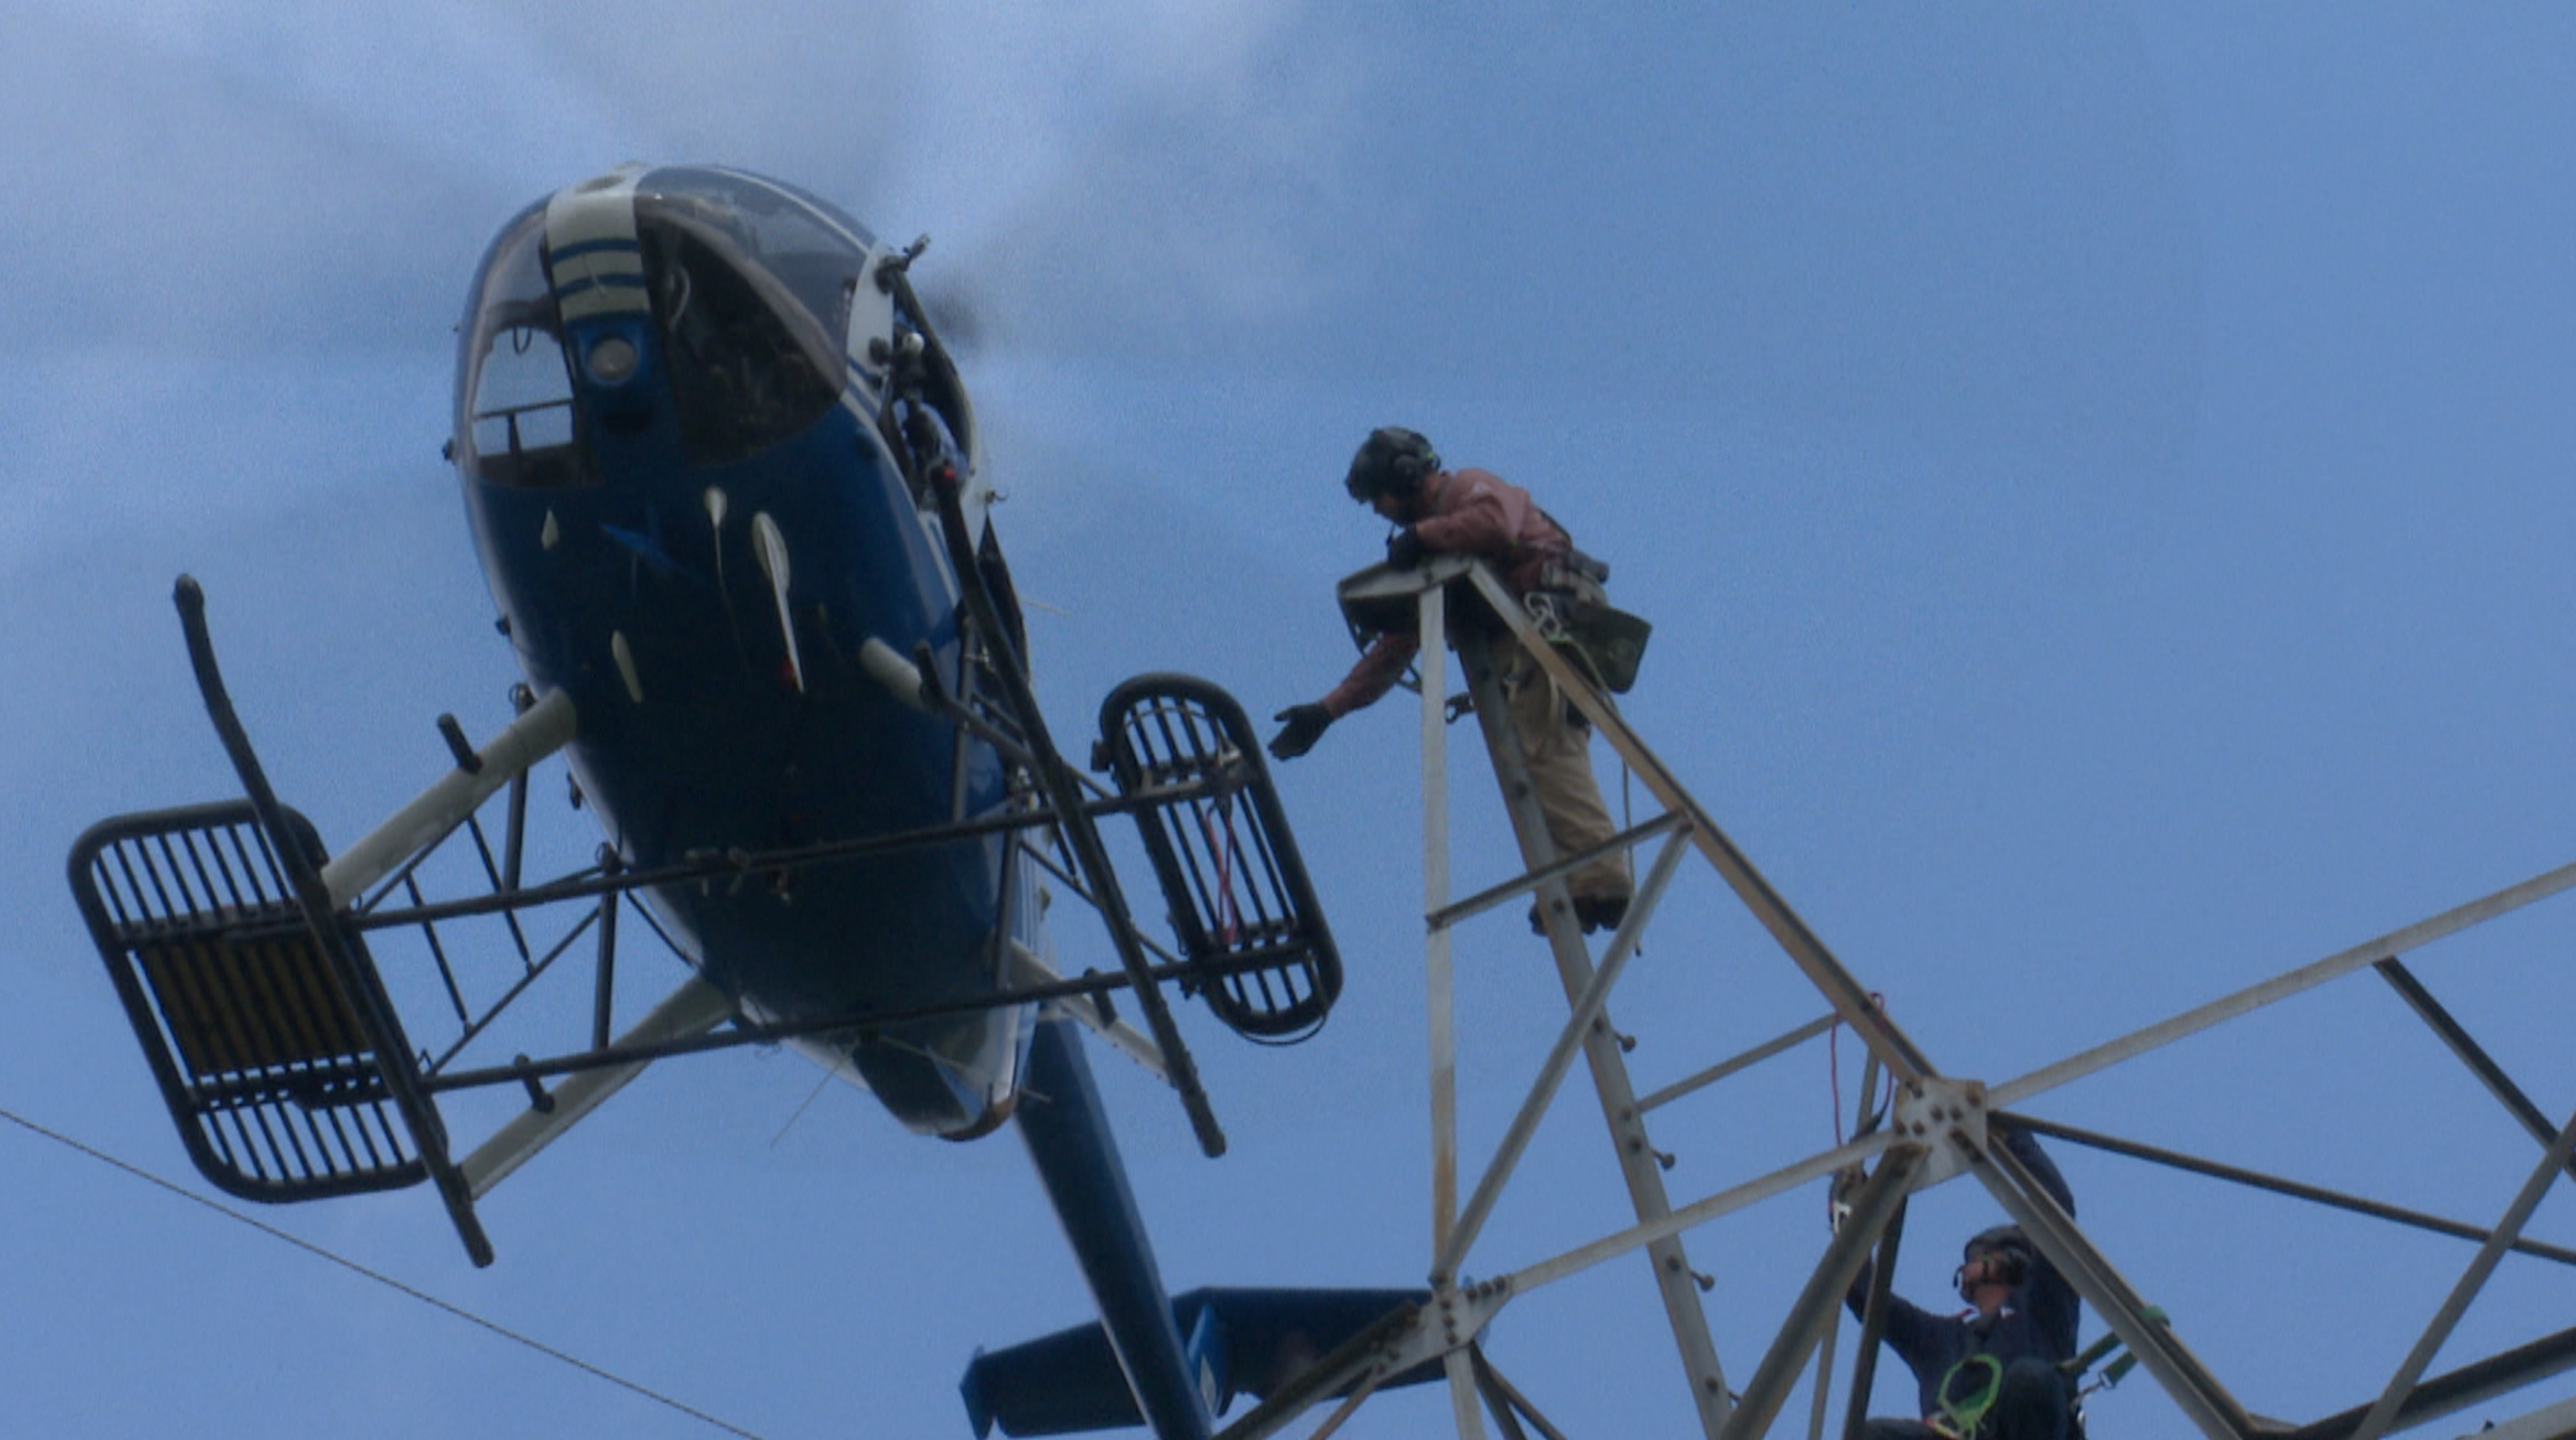 Tva Using Helicopters For High Voltage Line Repairs Whnt Com